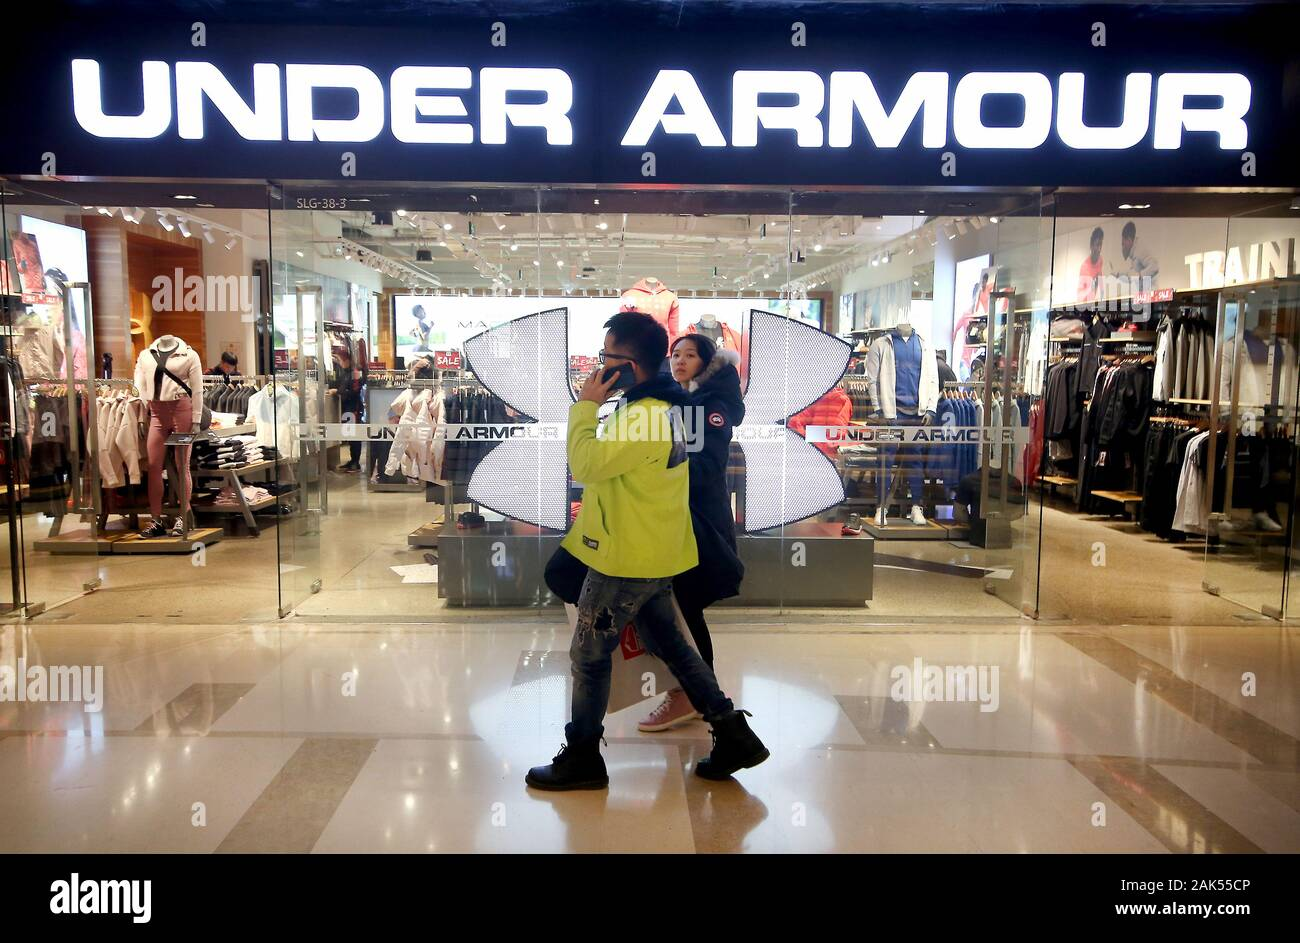 under armour clothing outlet